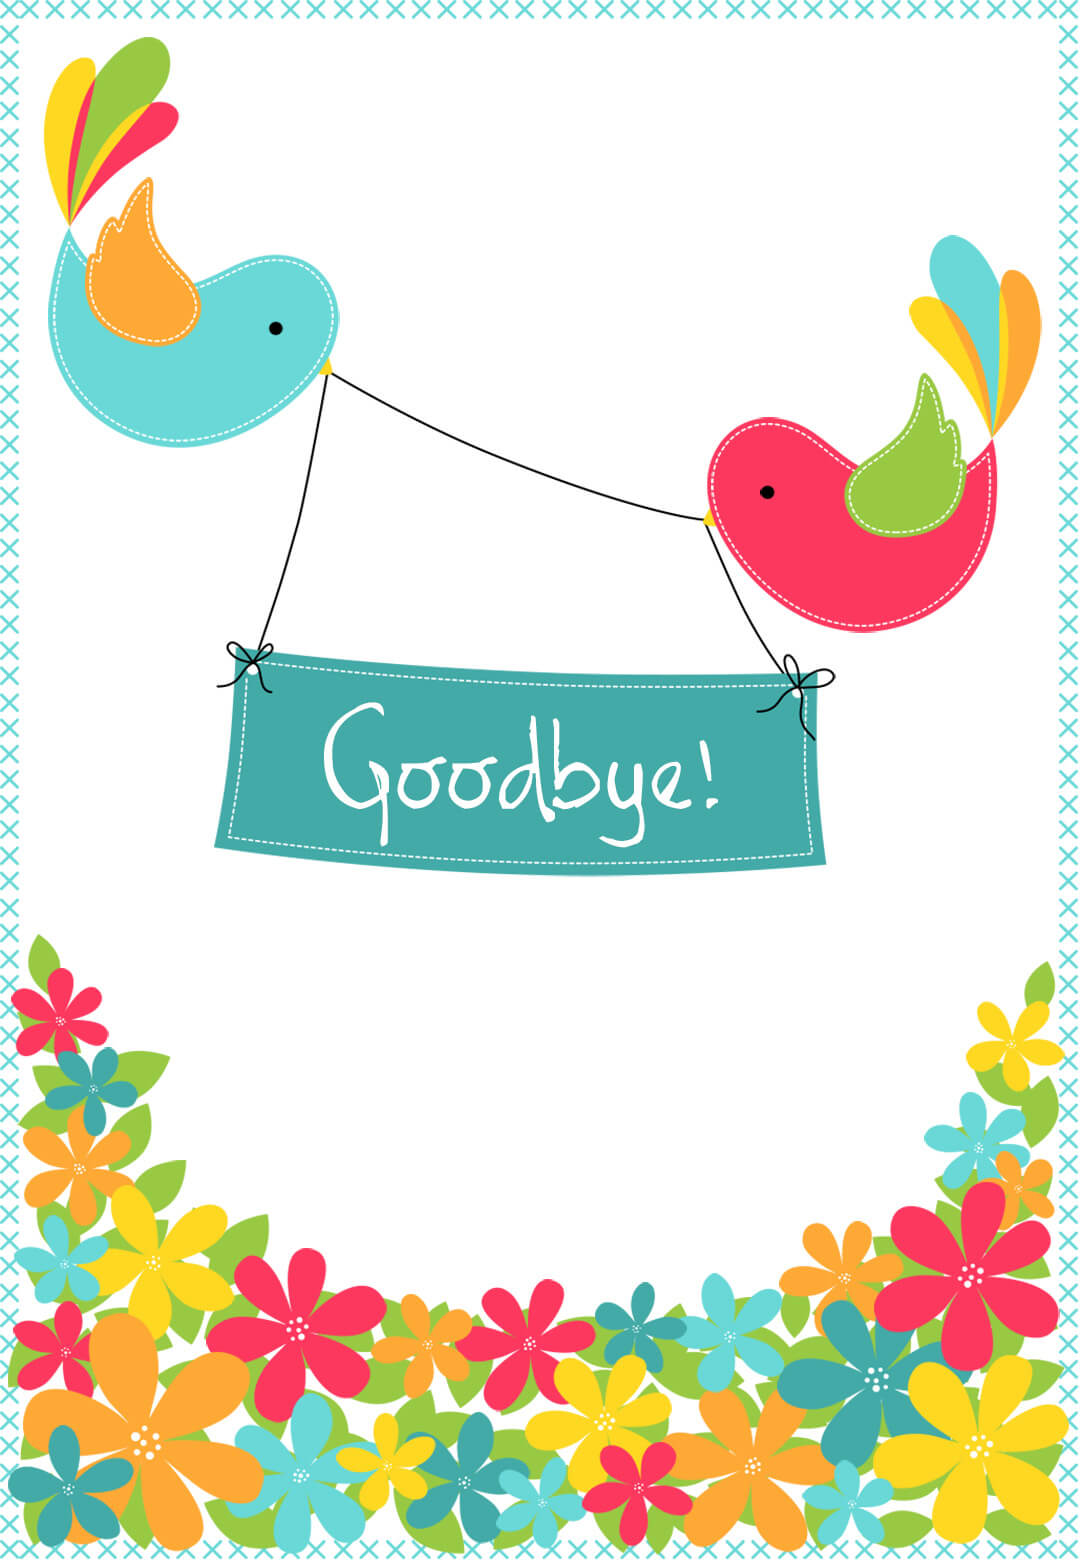 Goodbye From Your Colleagues - Good Luck Card (Free pertaining to Good Luck Card Template